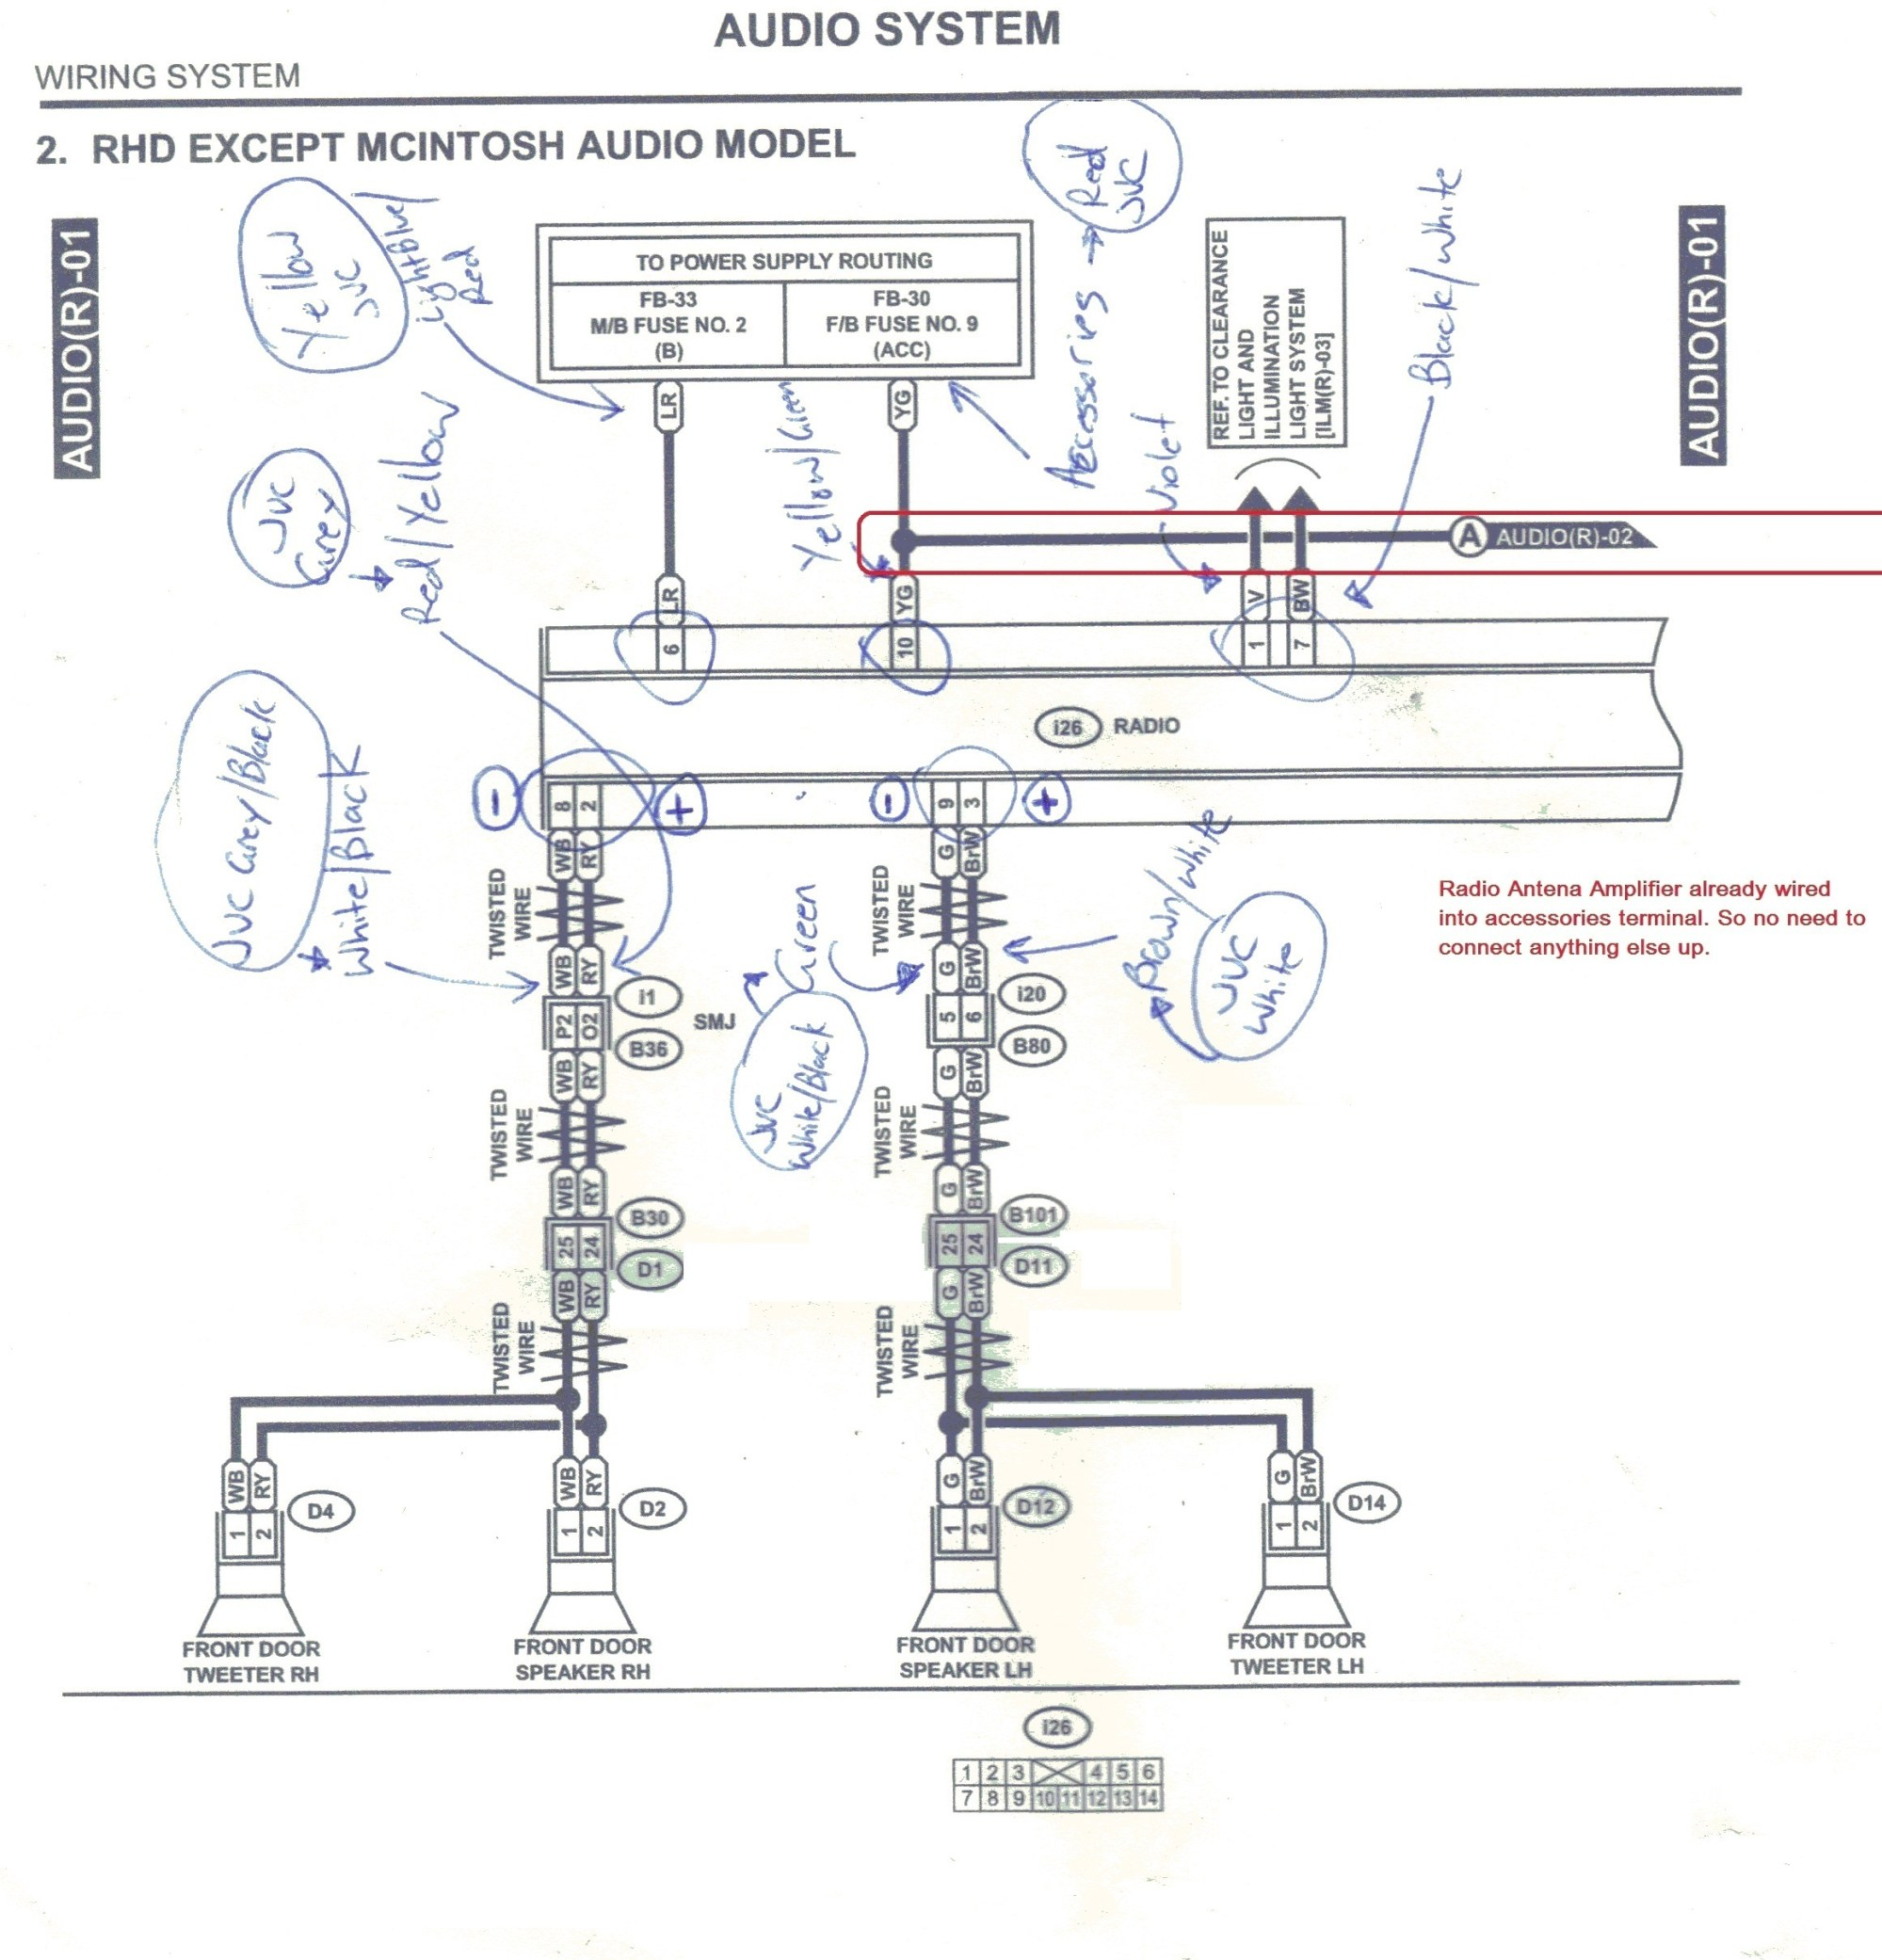 hight resolution of 2013 subaru outback fuse diagram wiring diagram schematic name 2001 subaru forester blue 2013 subaru forester electrical diagram